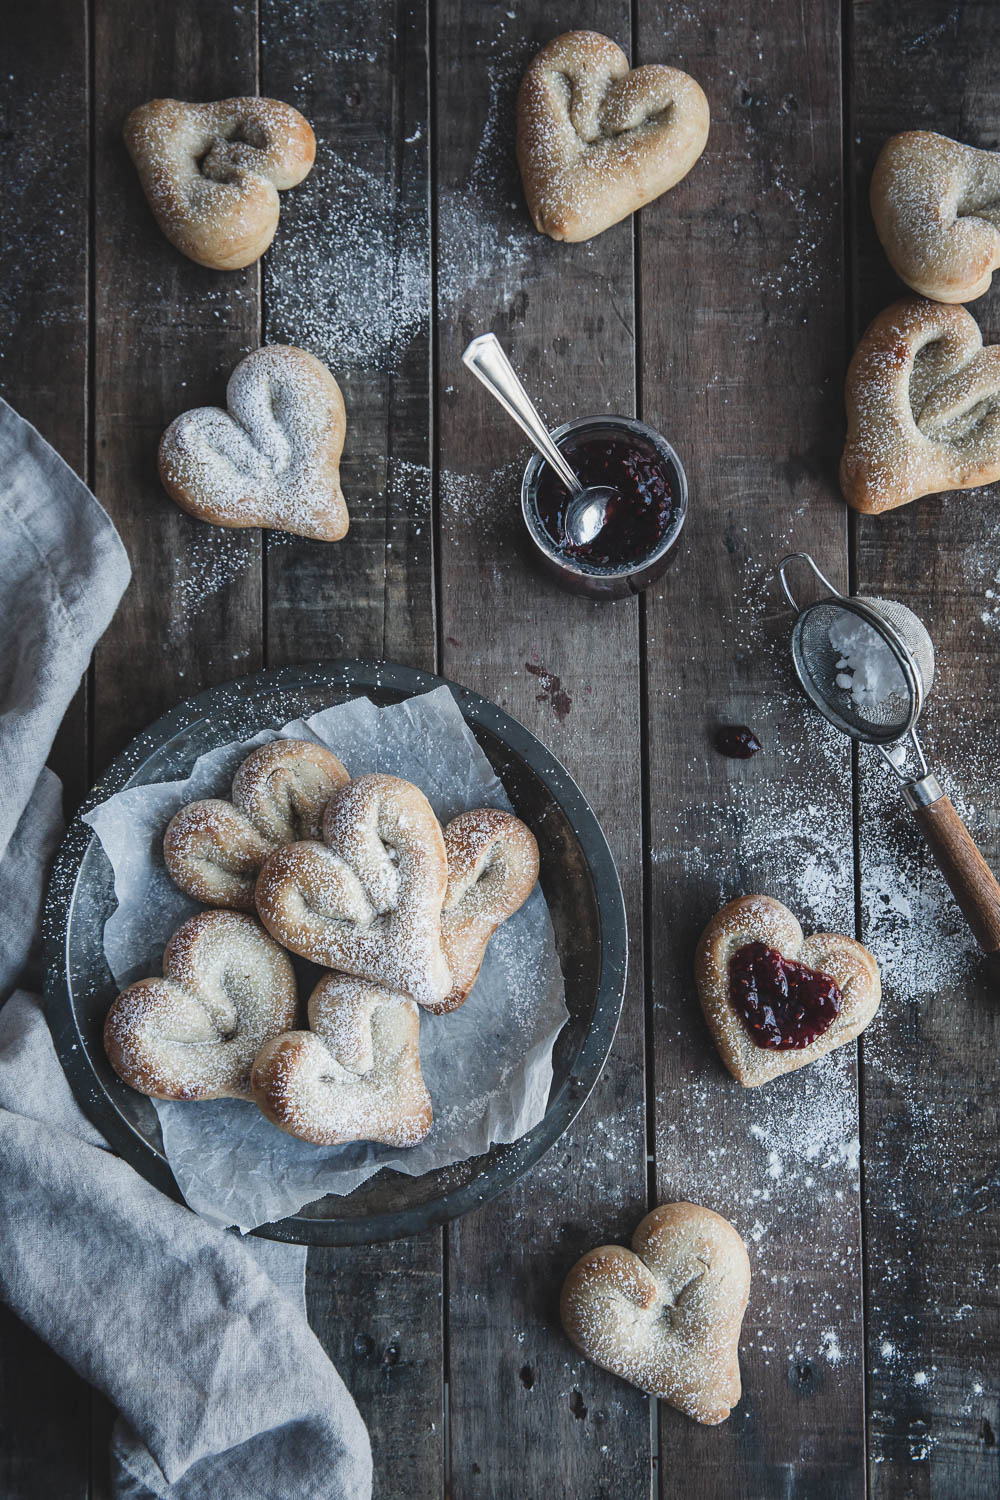 Sugar-dusted cardamom buns with raspberry jam